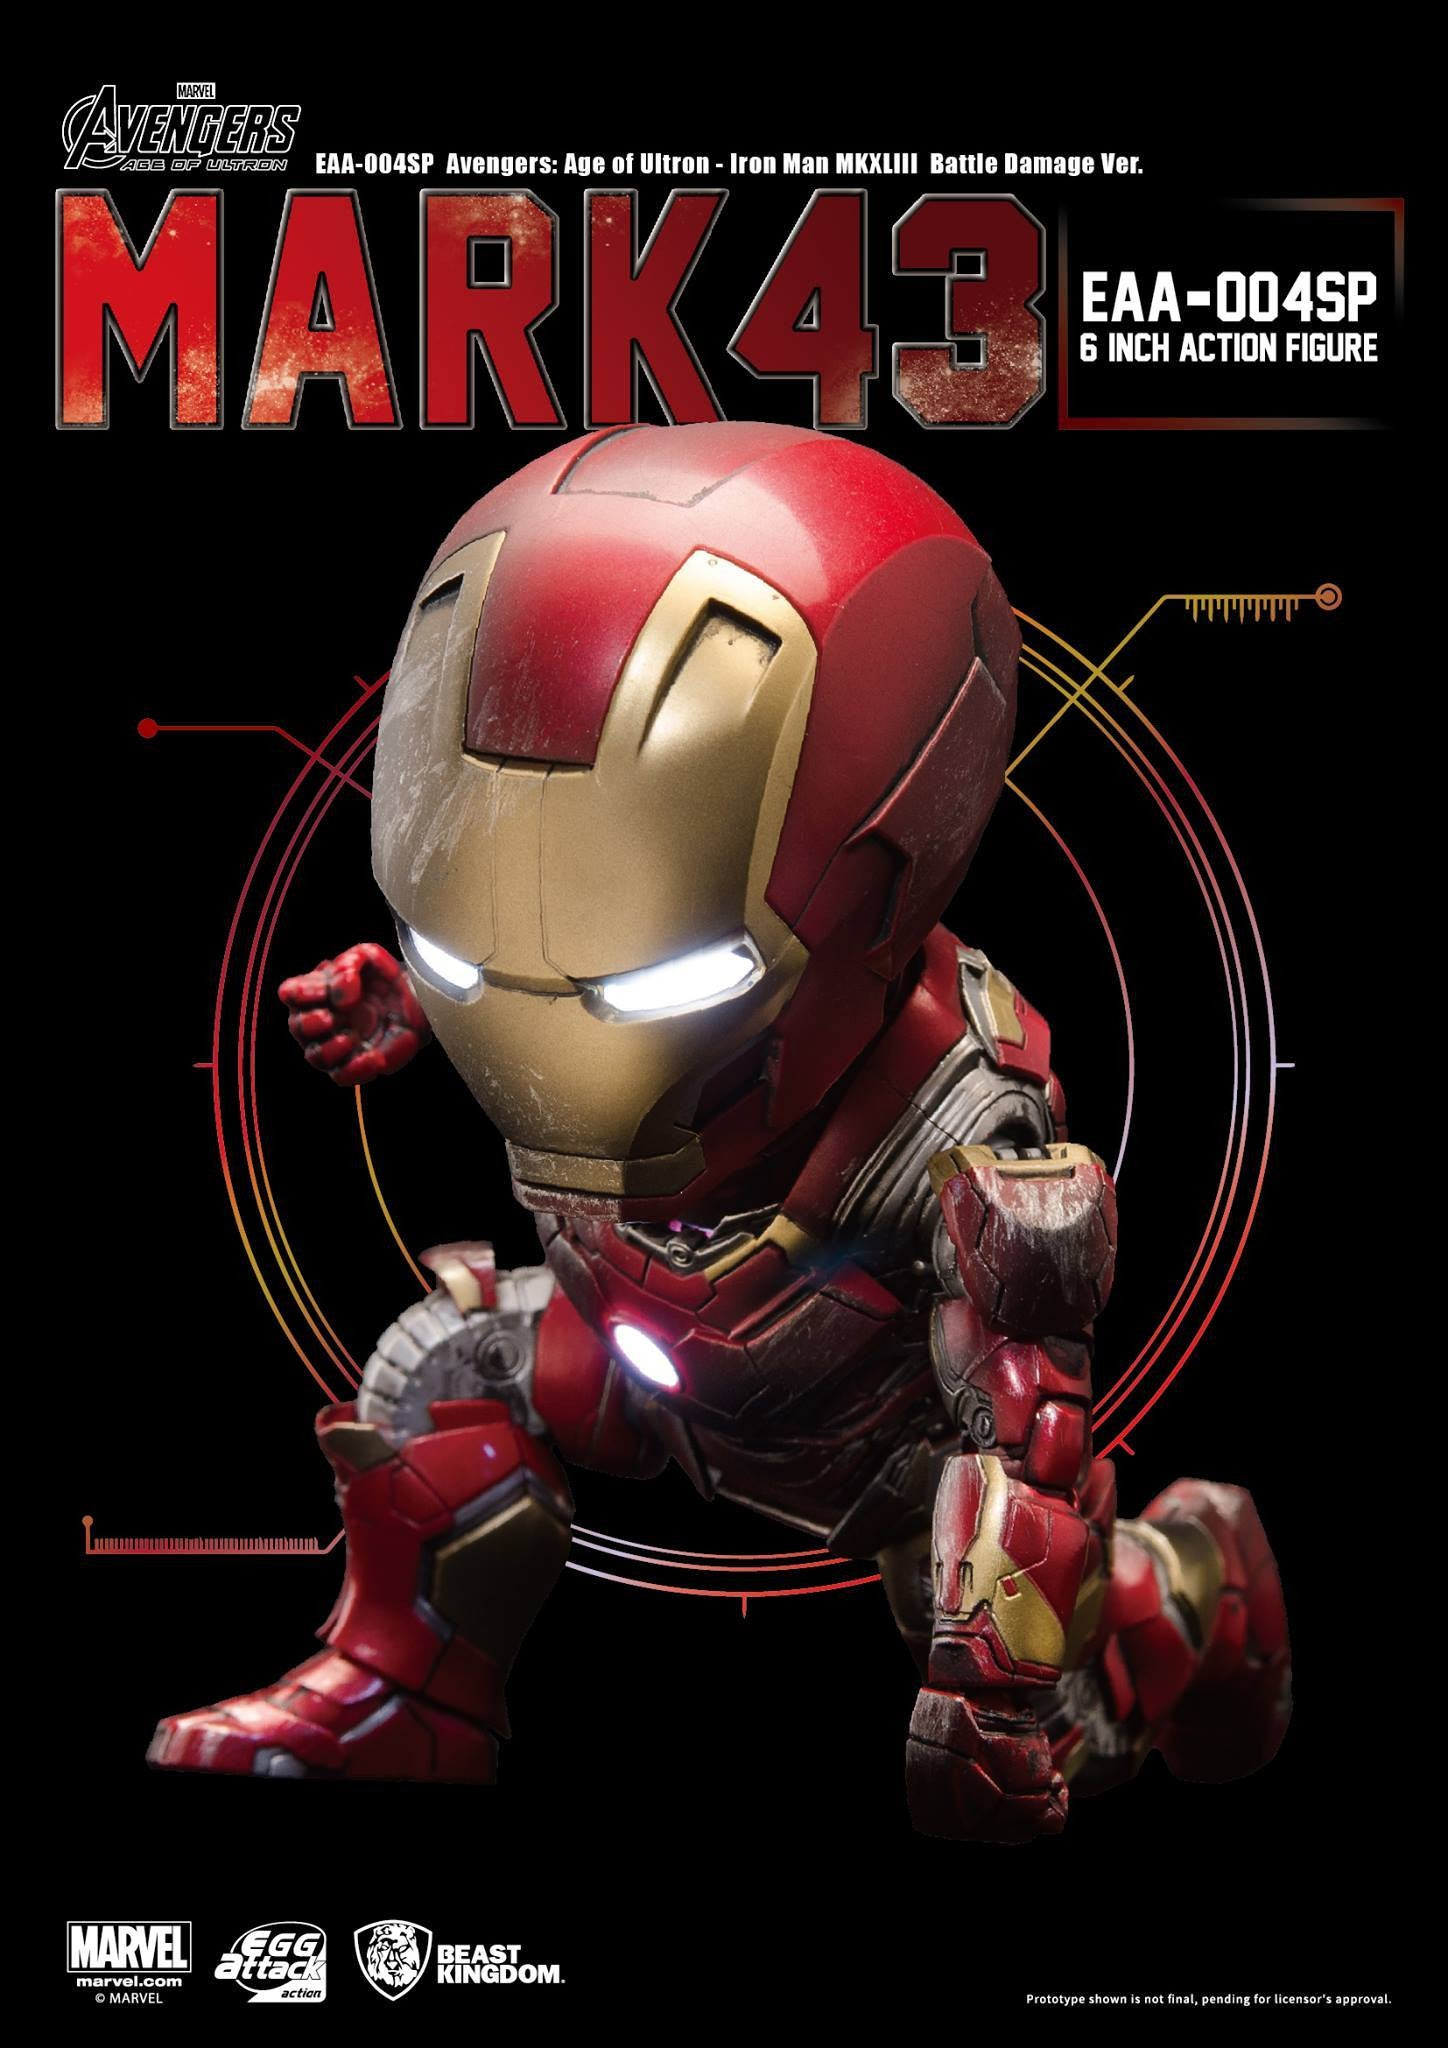 Egg Attack Action - EAA-004SP - Avengers: Age of Ultron - Iron Man Mark 43 (XLIII) (Battle Damage Edition) - Marvelous Toys - 4